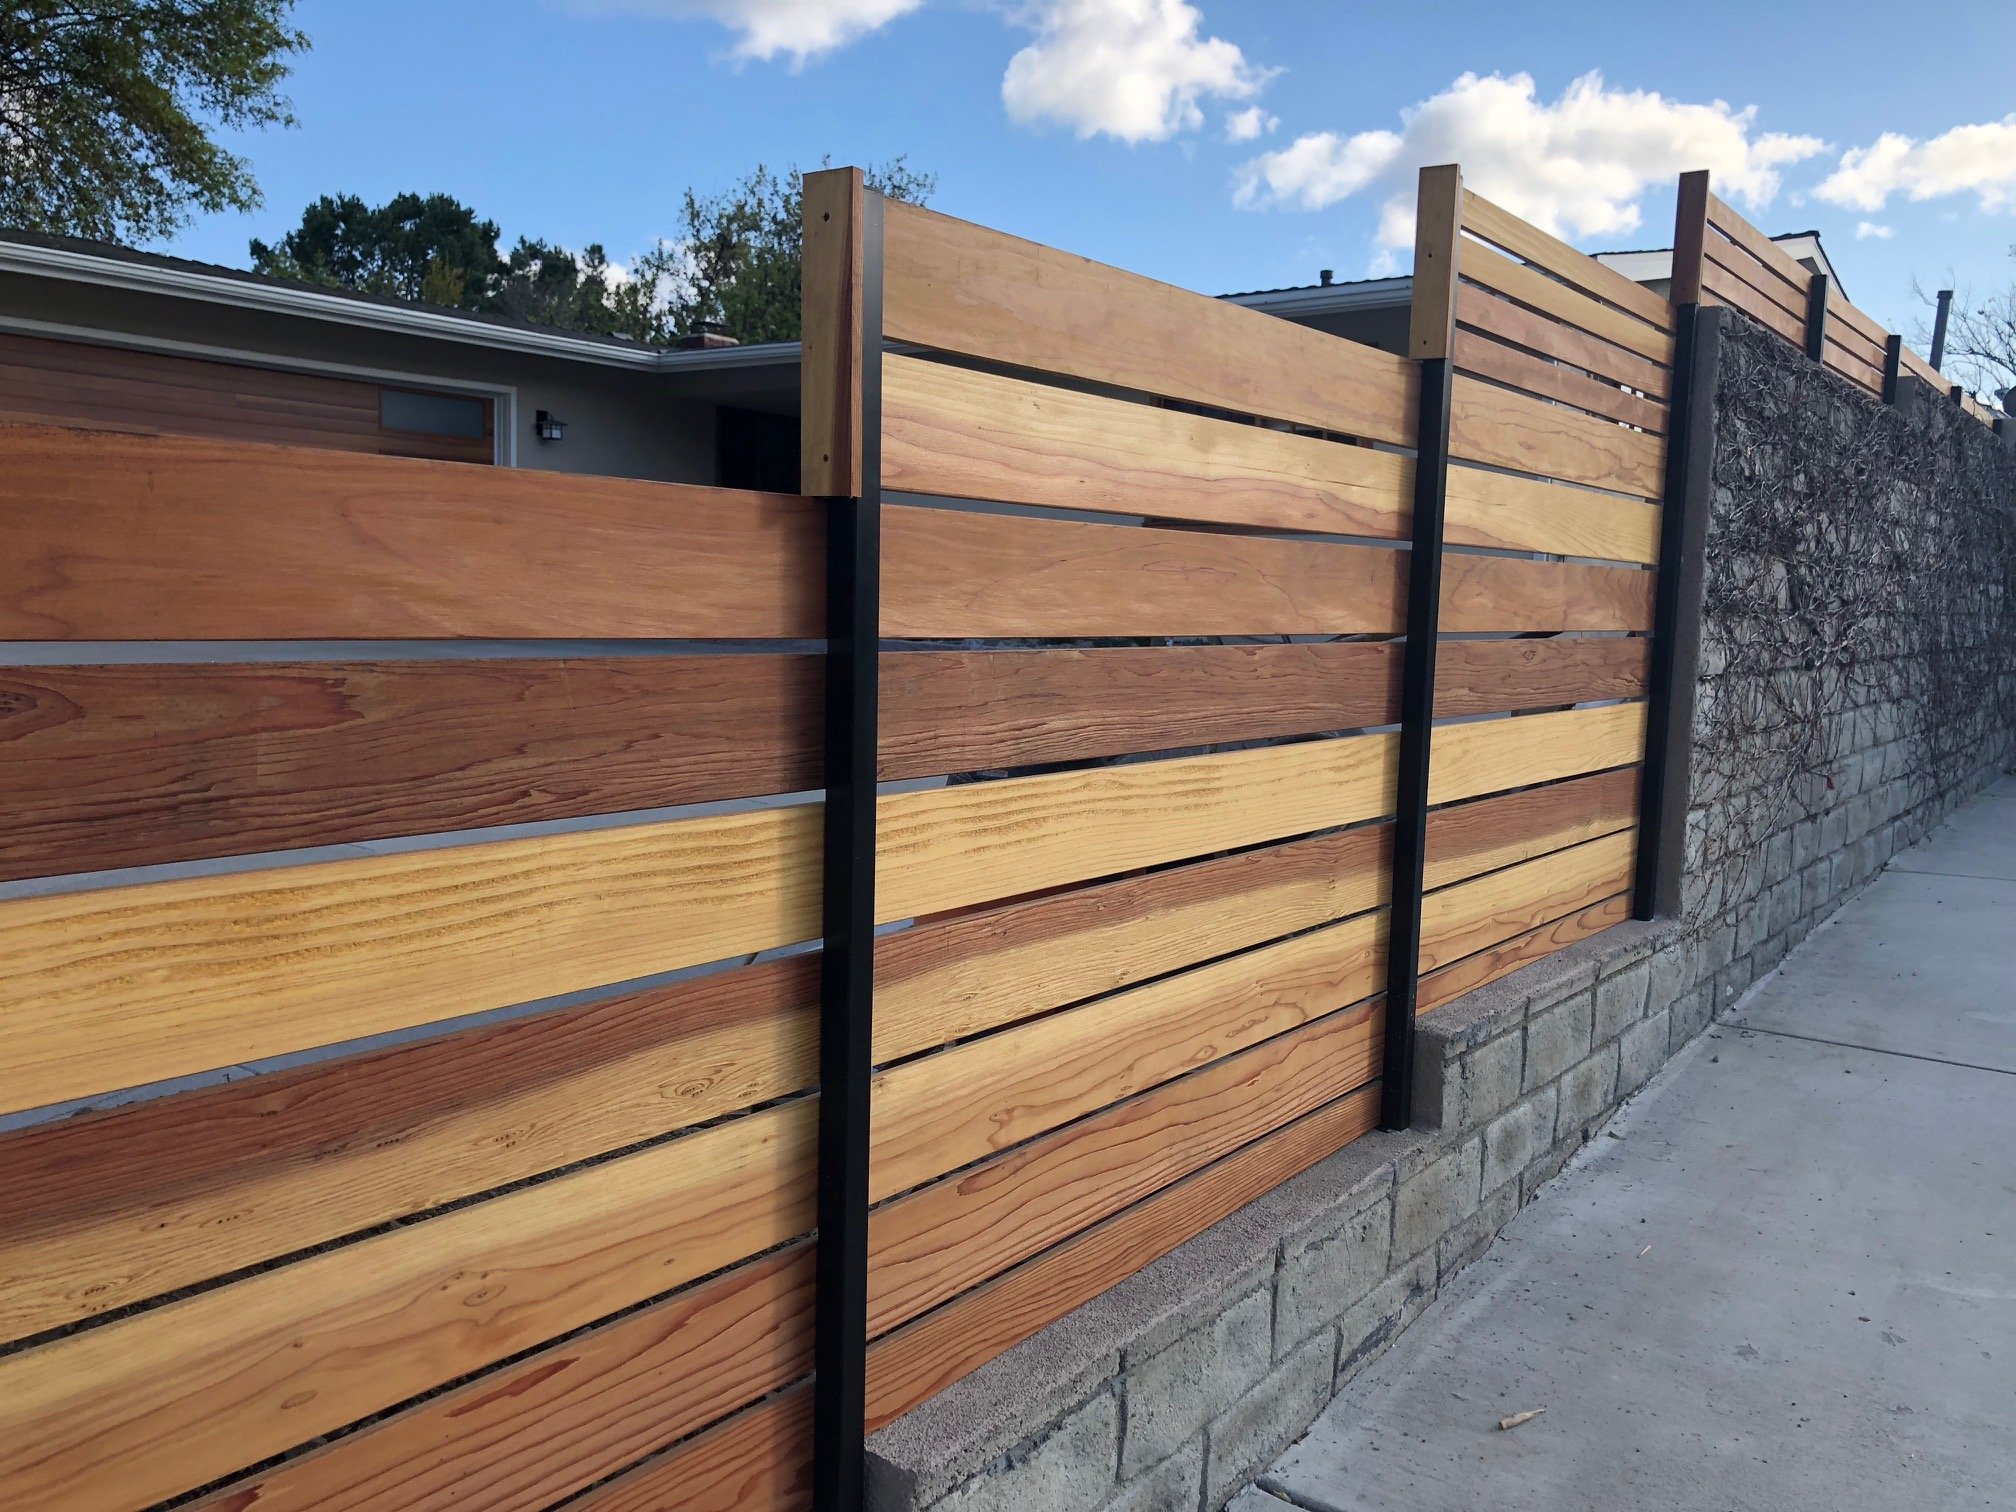 Fence Company, Fence Installation and Repair